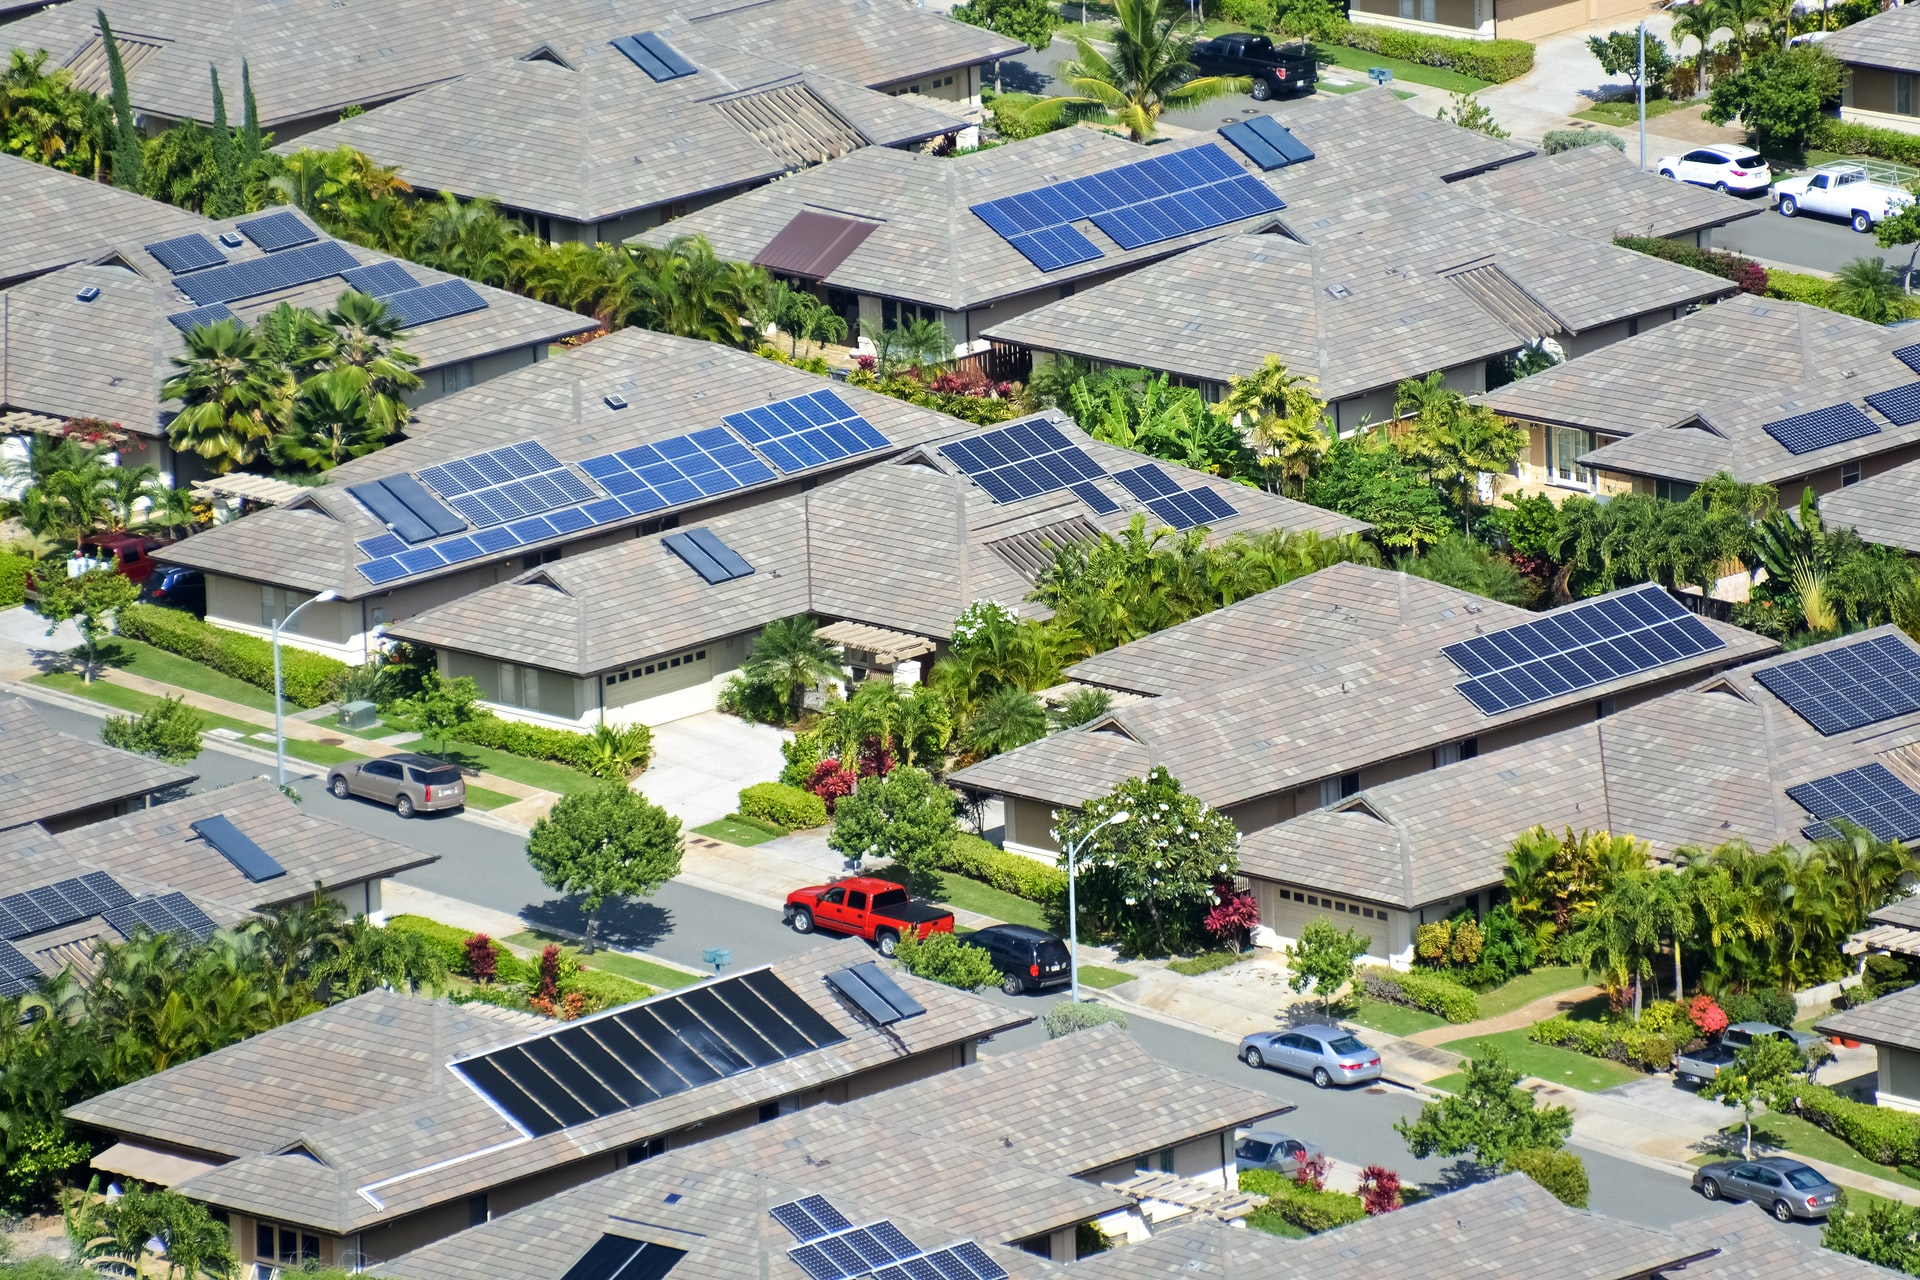 DOE Aims to Power an Equivalent of 5 Million Households with Solar by 2025